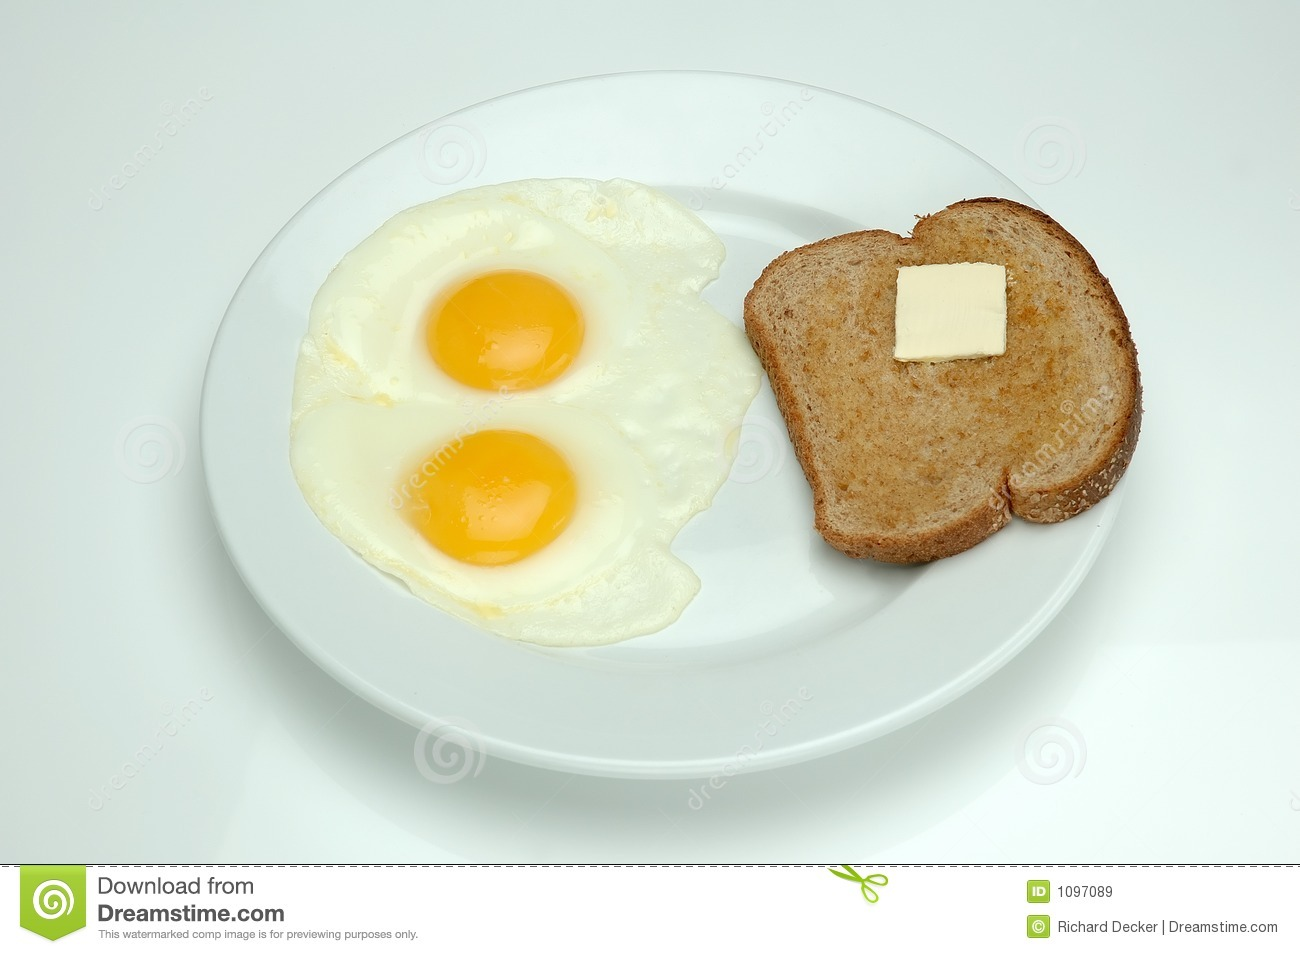 Two sunny side up eggs and toast for breakfast to start off the day.